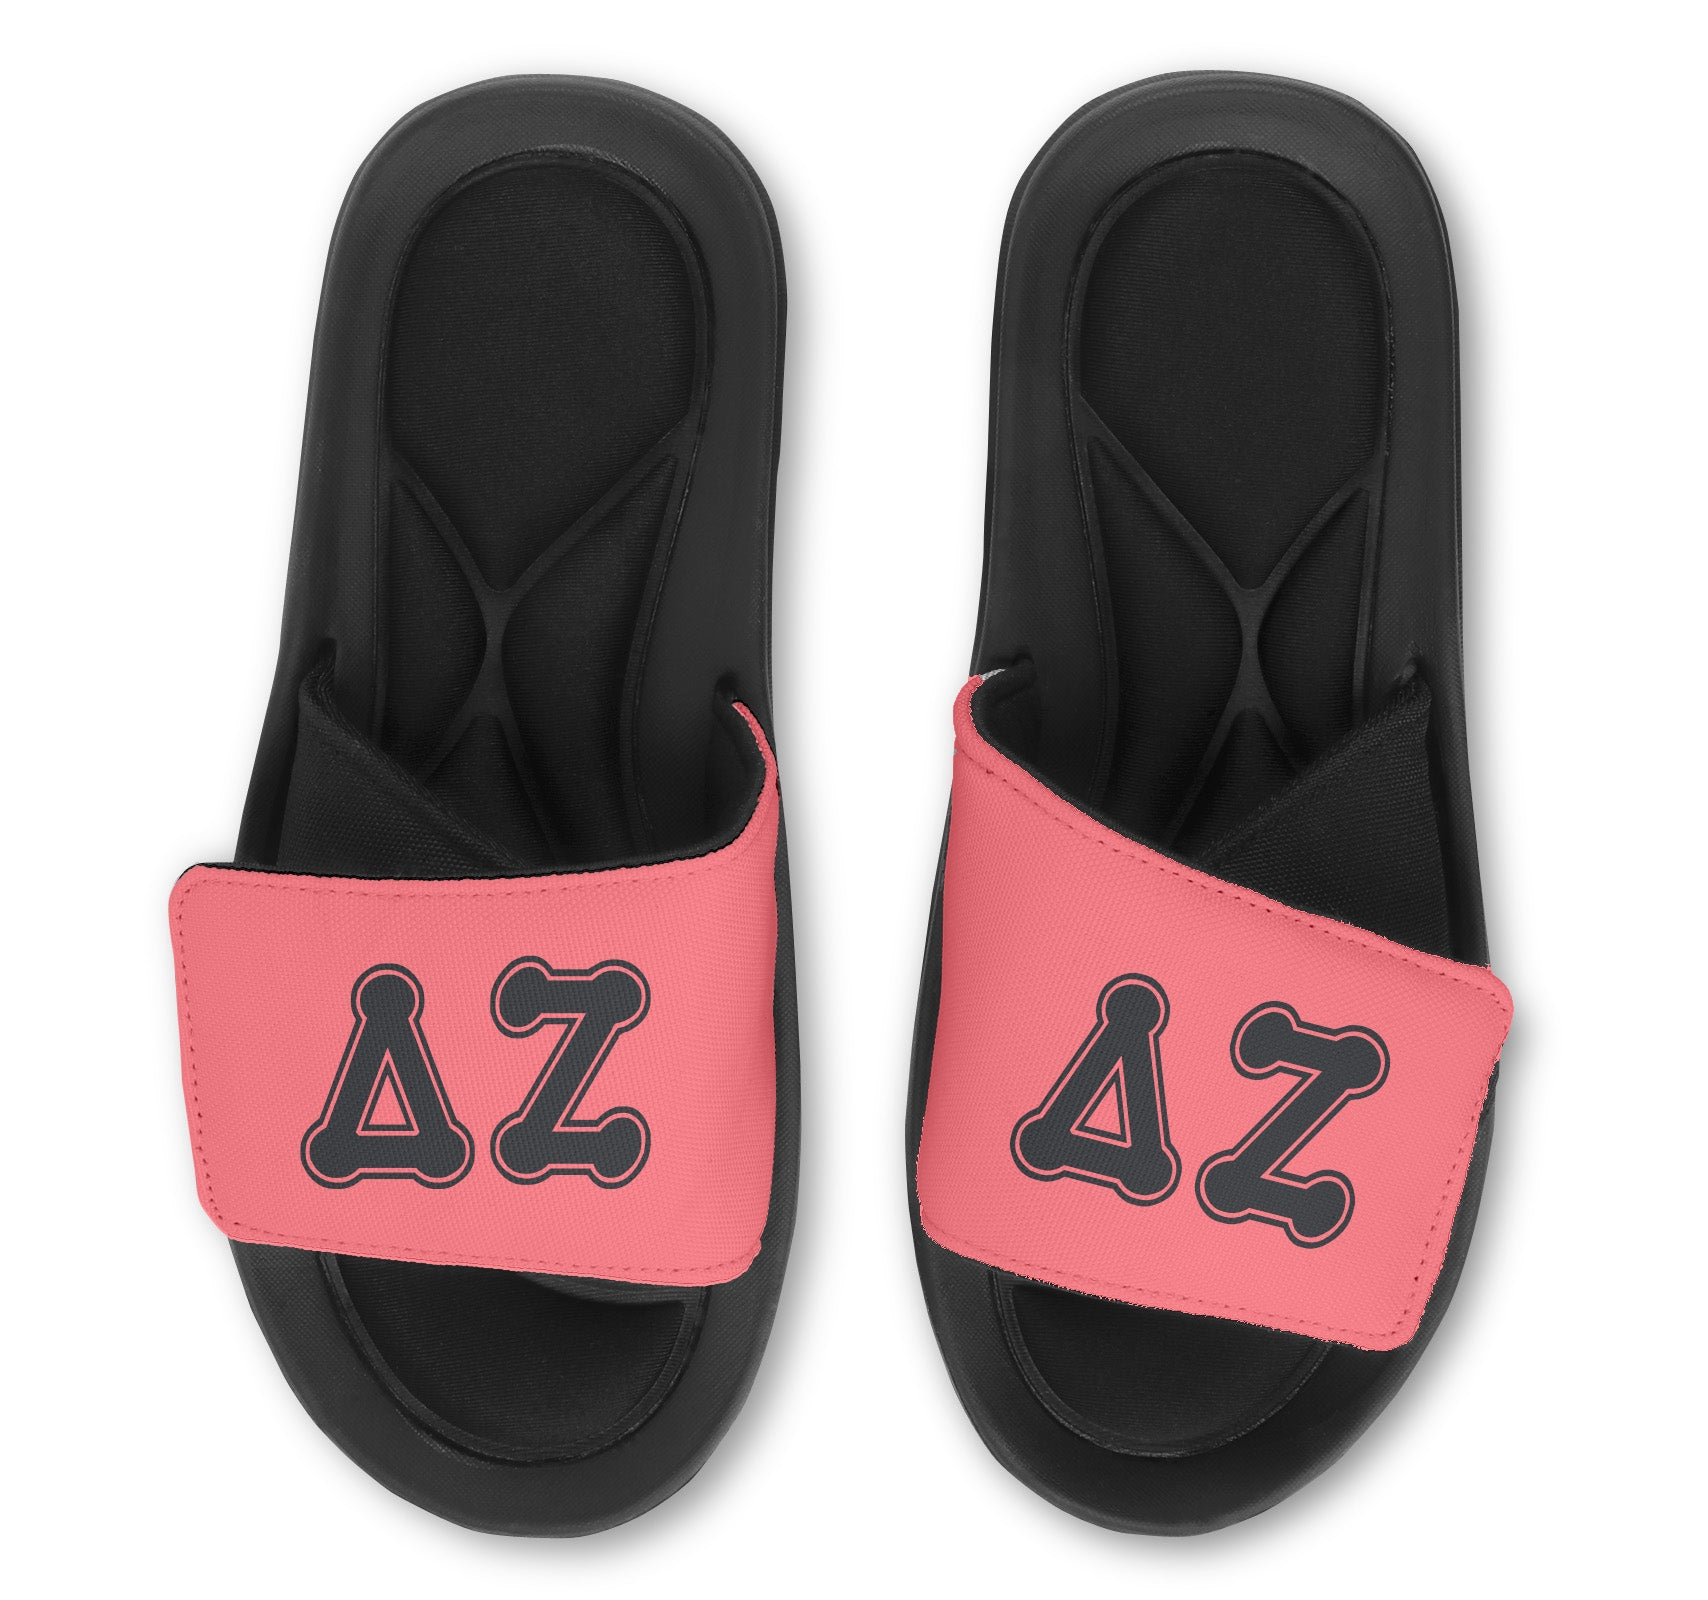 Delta Zeta Slides - Customize With Your Name